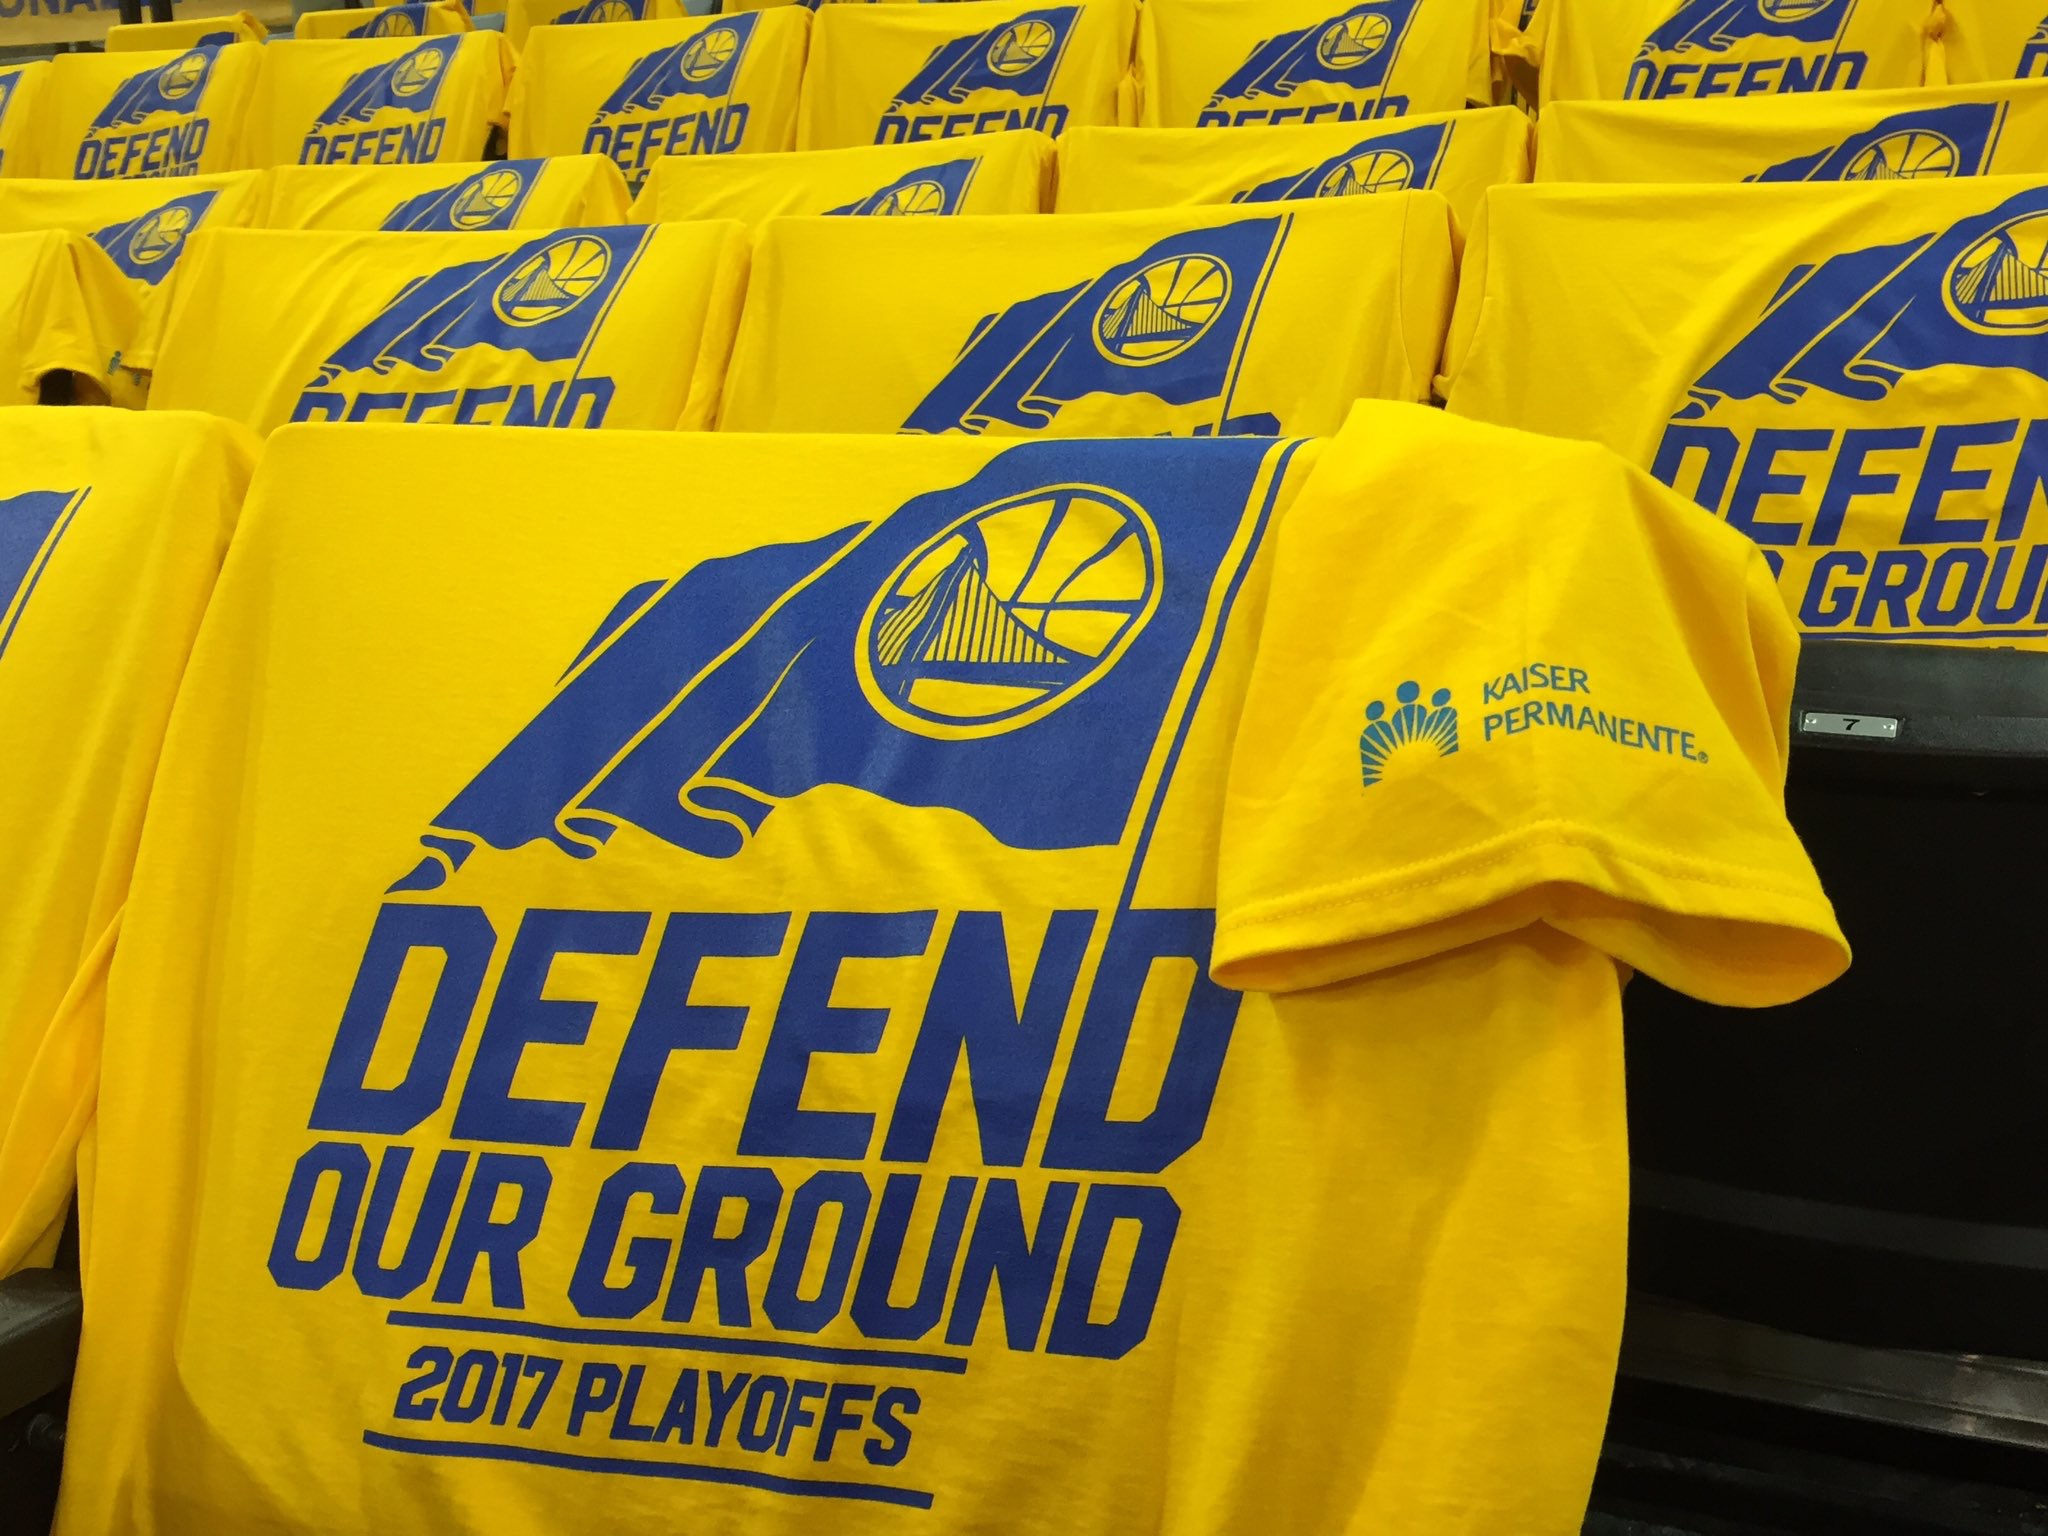 Warriors Playoff T Shirts Give Cavs Fans Another Chance To Poke Fun